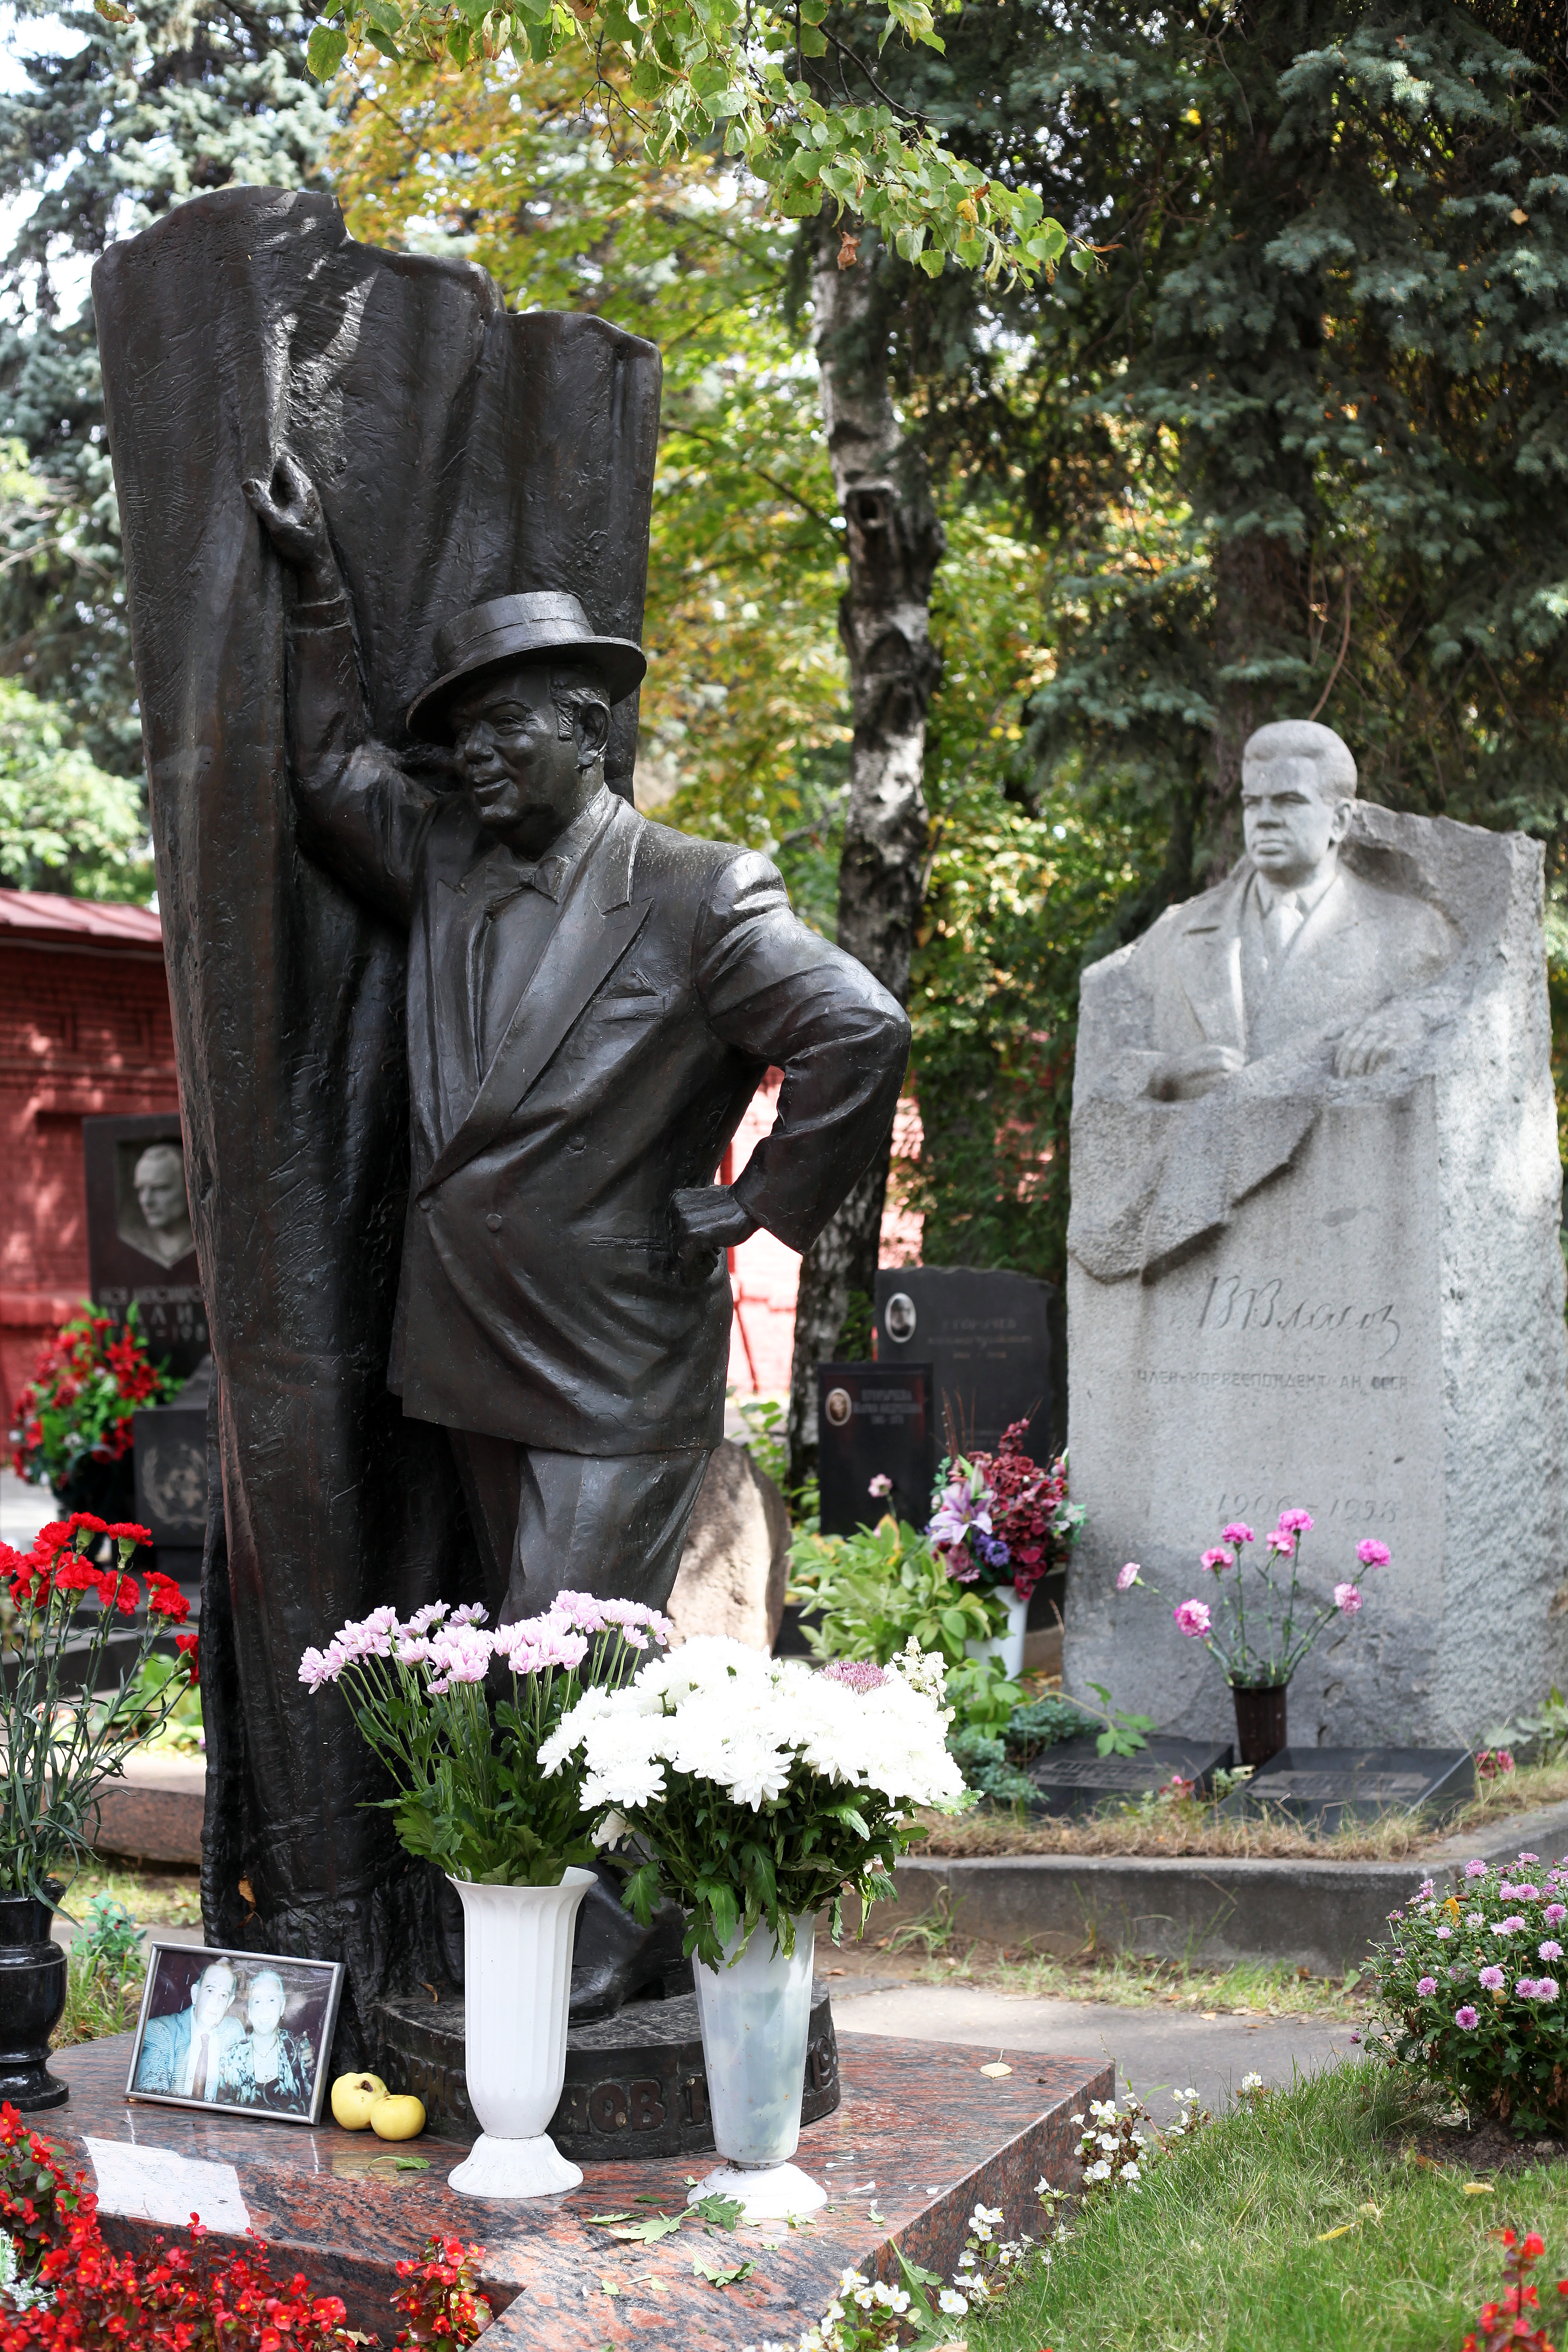 Novodevichy Cemetery Moscow, Meeting new friends at the Novodevichy Cemetery | Eithne Nightingale